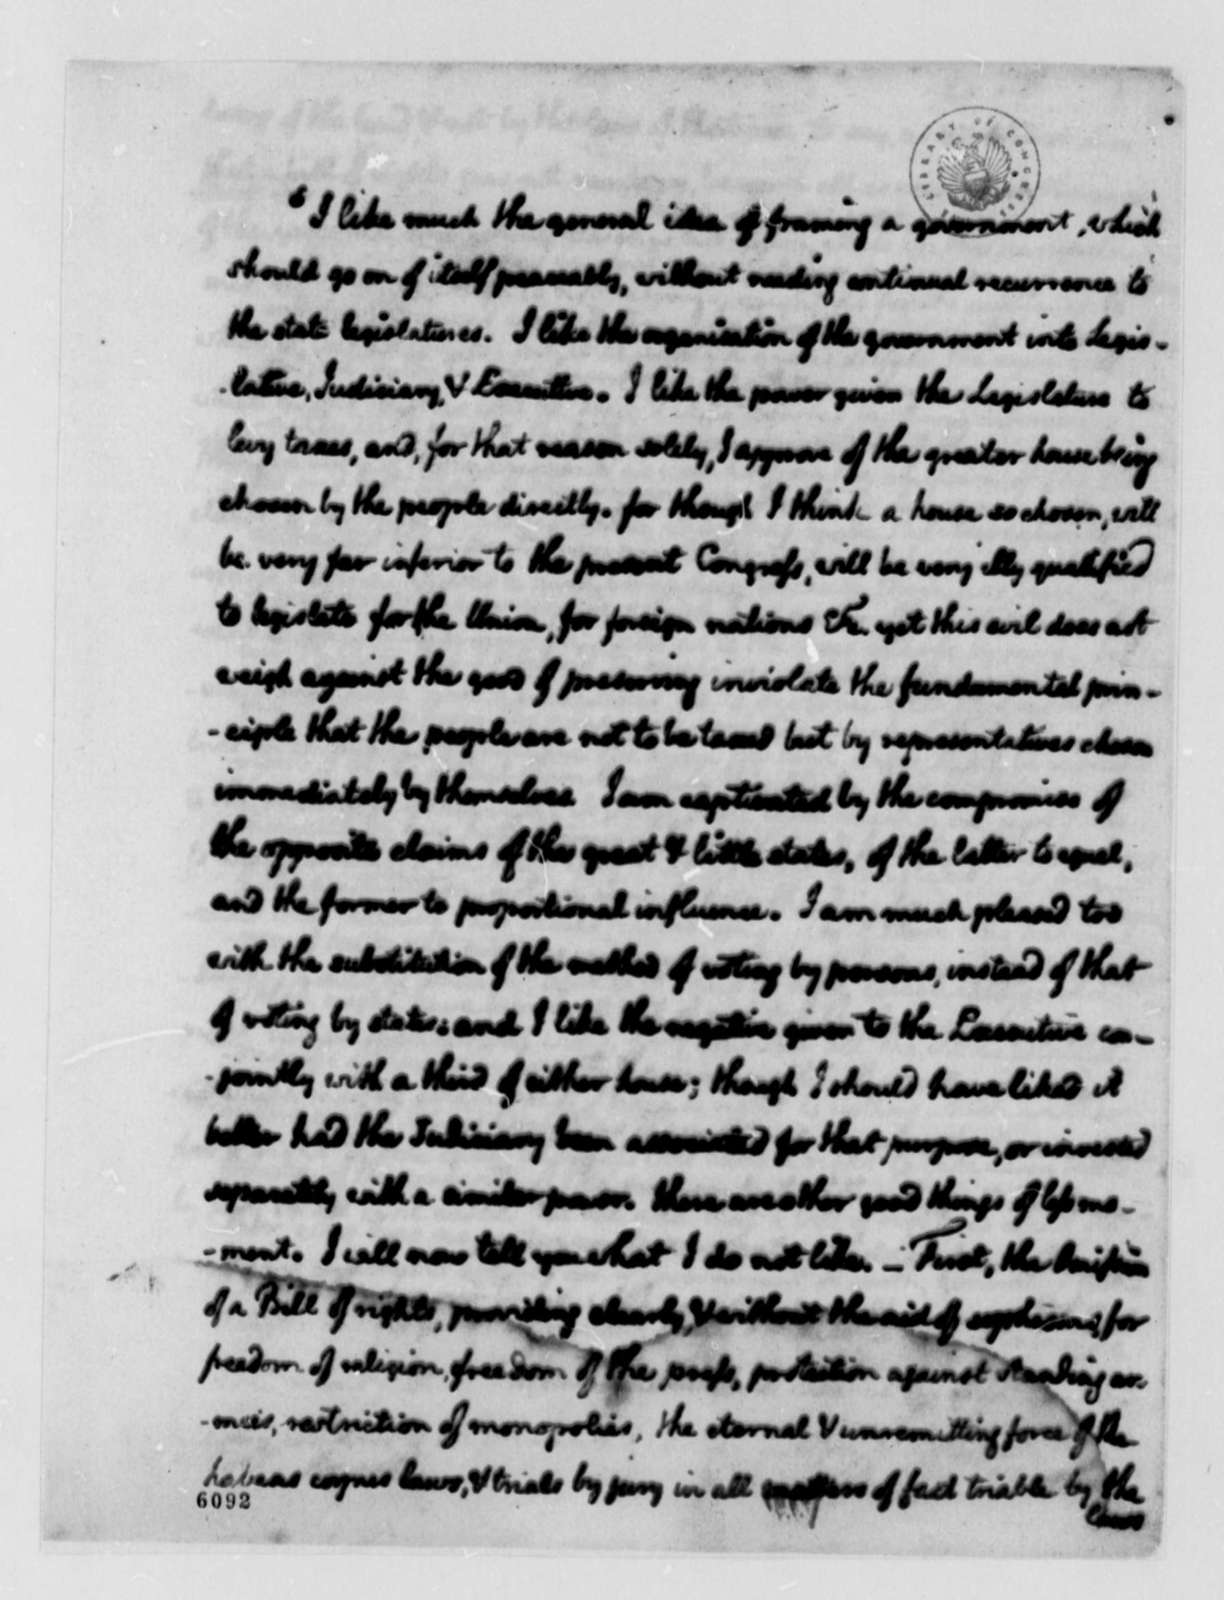 Thomas Jefferson to Uriah Forrest, December 31, 1787, with Memorandum on Constitutional Convention, etc.; with Copy of Letter